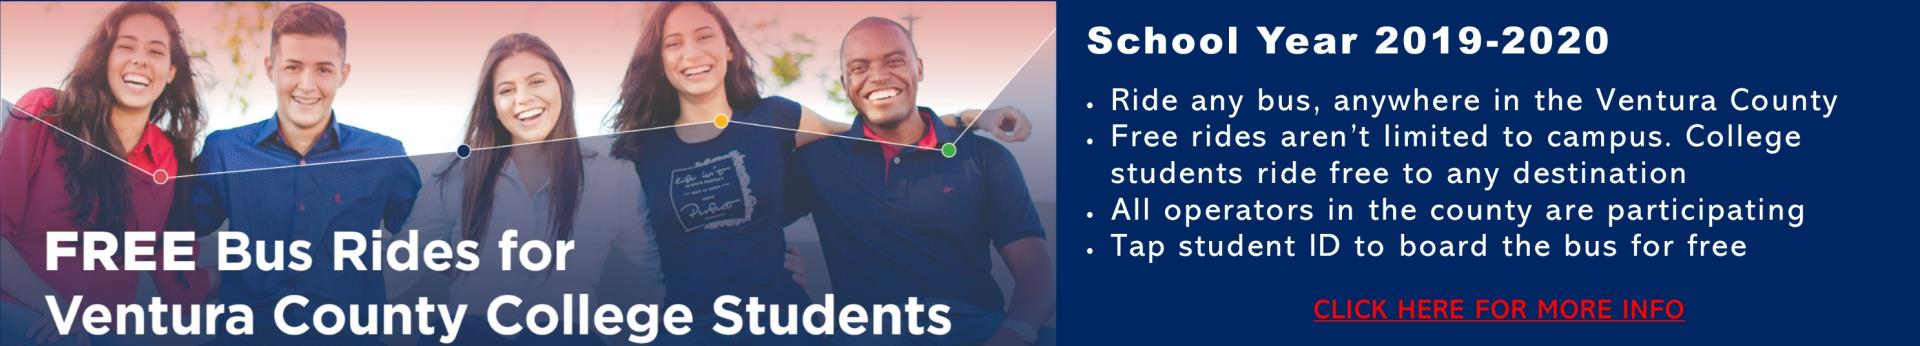 Free College Ride_2019-2020_V2_Program Web Banner